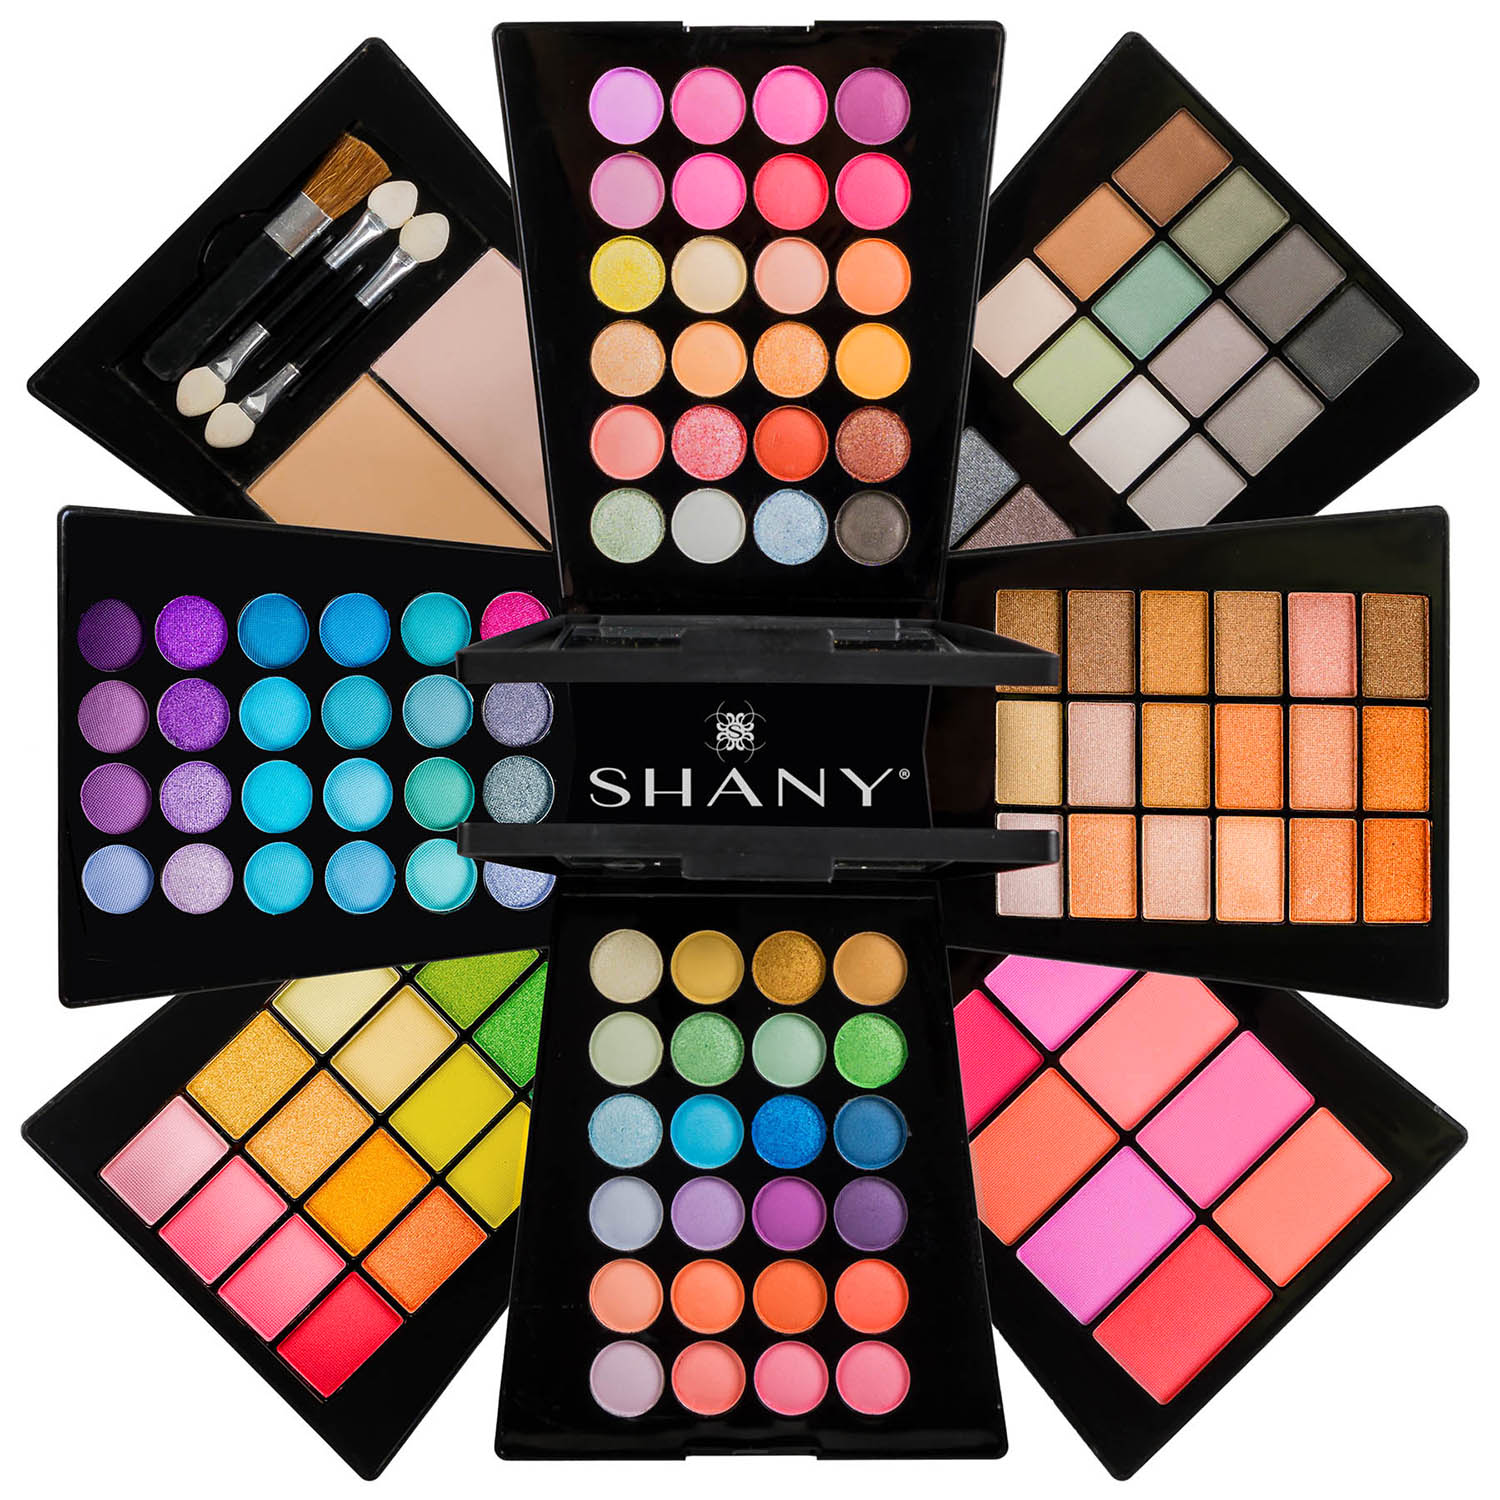 The SHANY Beauty Cliche - Expanding Makeup Set - Eyes and Fa